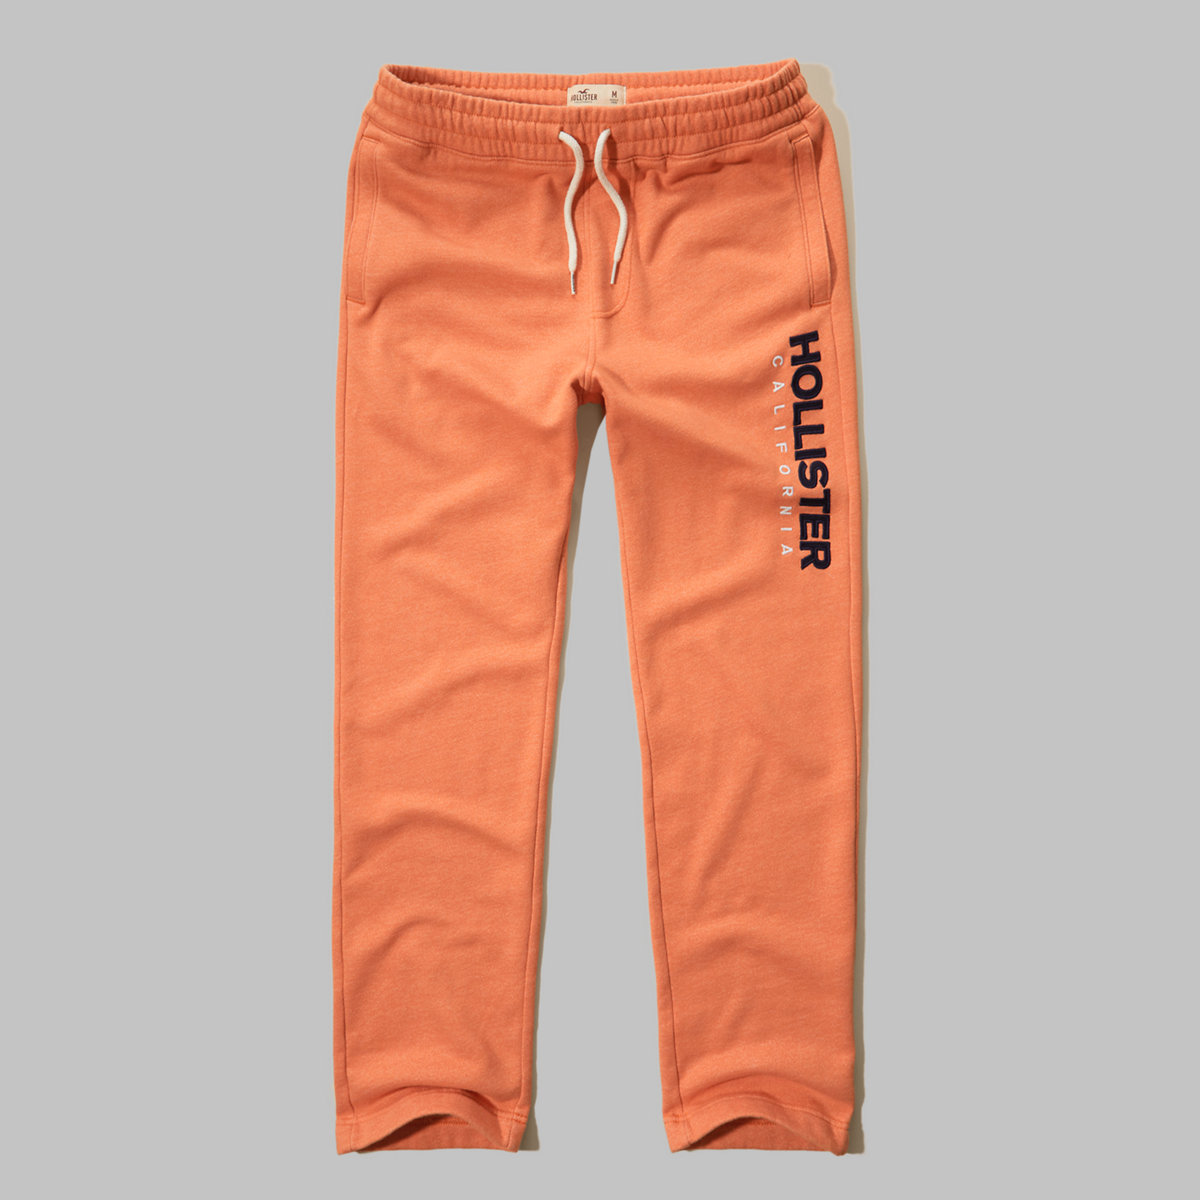 Hollister Textured Logo Graphic Sweatpants